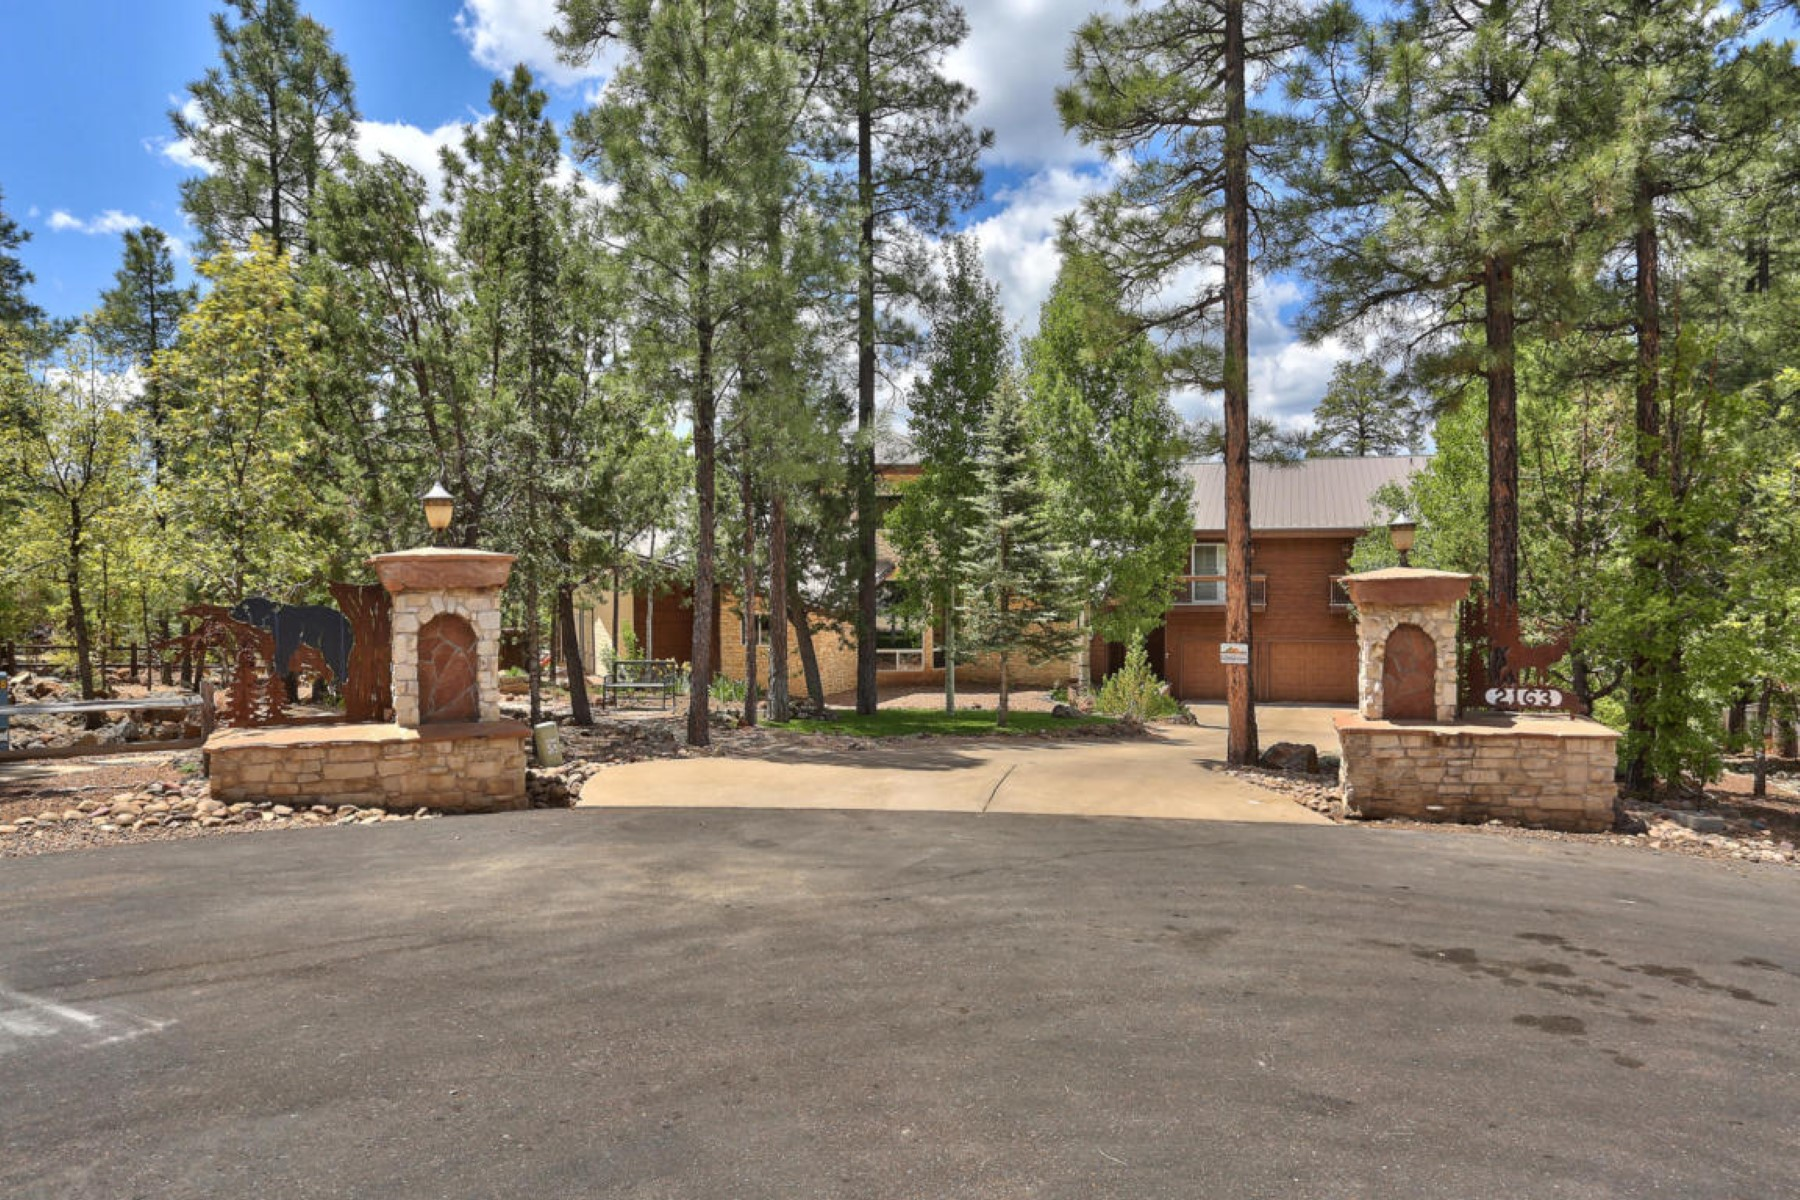 Moradia para Venda às Spectacular estate conveniently located in gated community of Pineridge 2163 Creekside Court Pinetop, Arizona, 85935 Estados Unidos